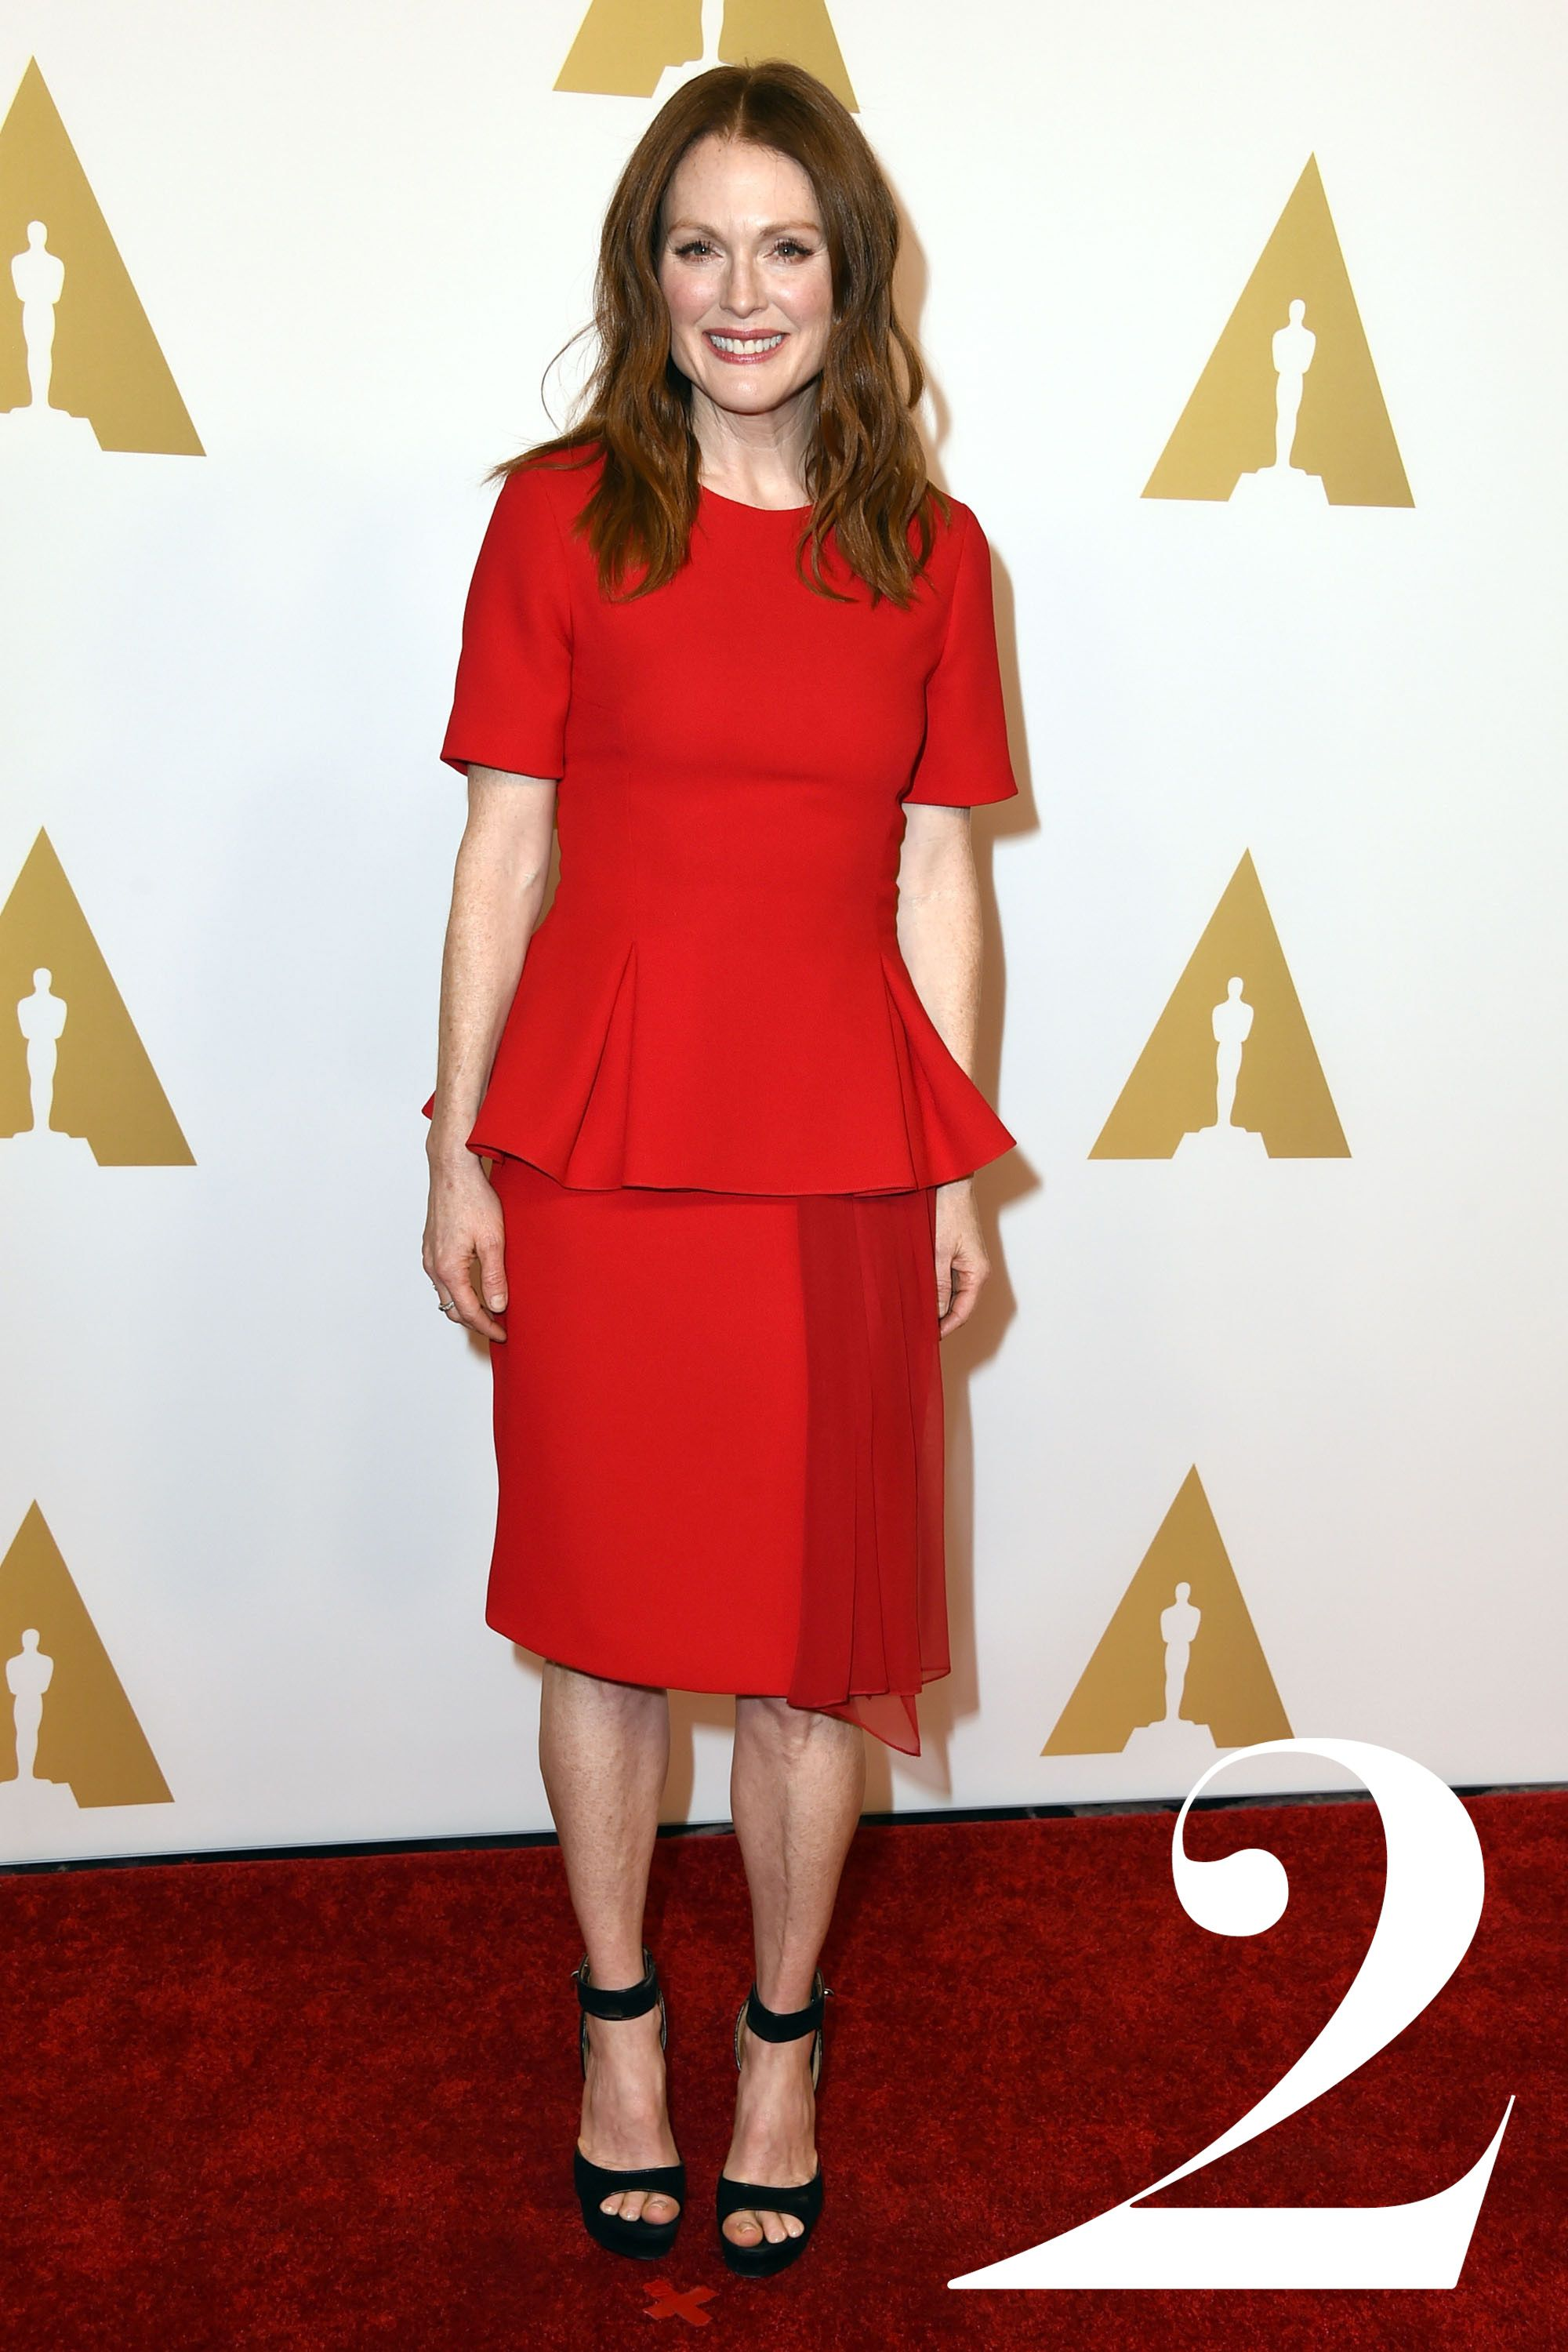 <strong>What: </strong>Prabal Gurung<strong>Where:</strong> The Academy's Annual Nominee Luncheon<strong>Why:</strong> The Best Actress nominee looks bold yet sophisticated in a monochrome set and platform heels.